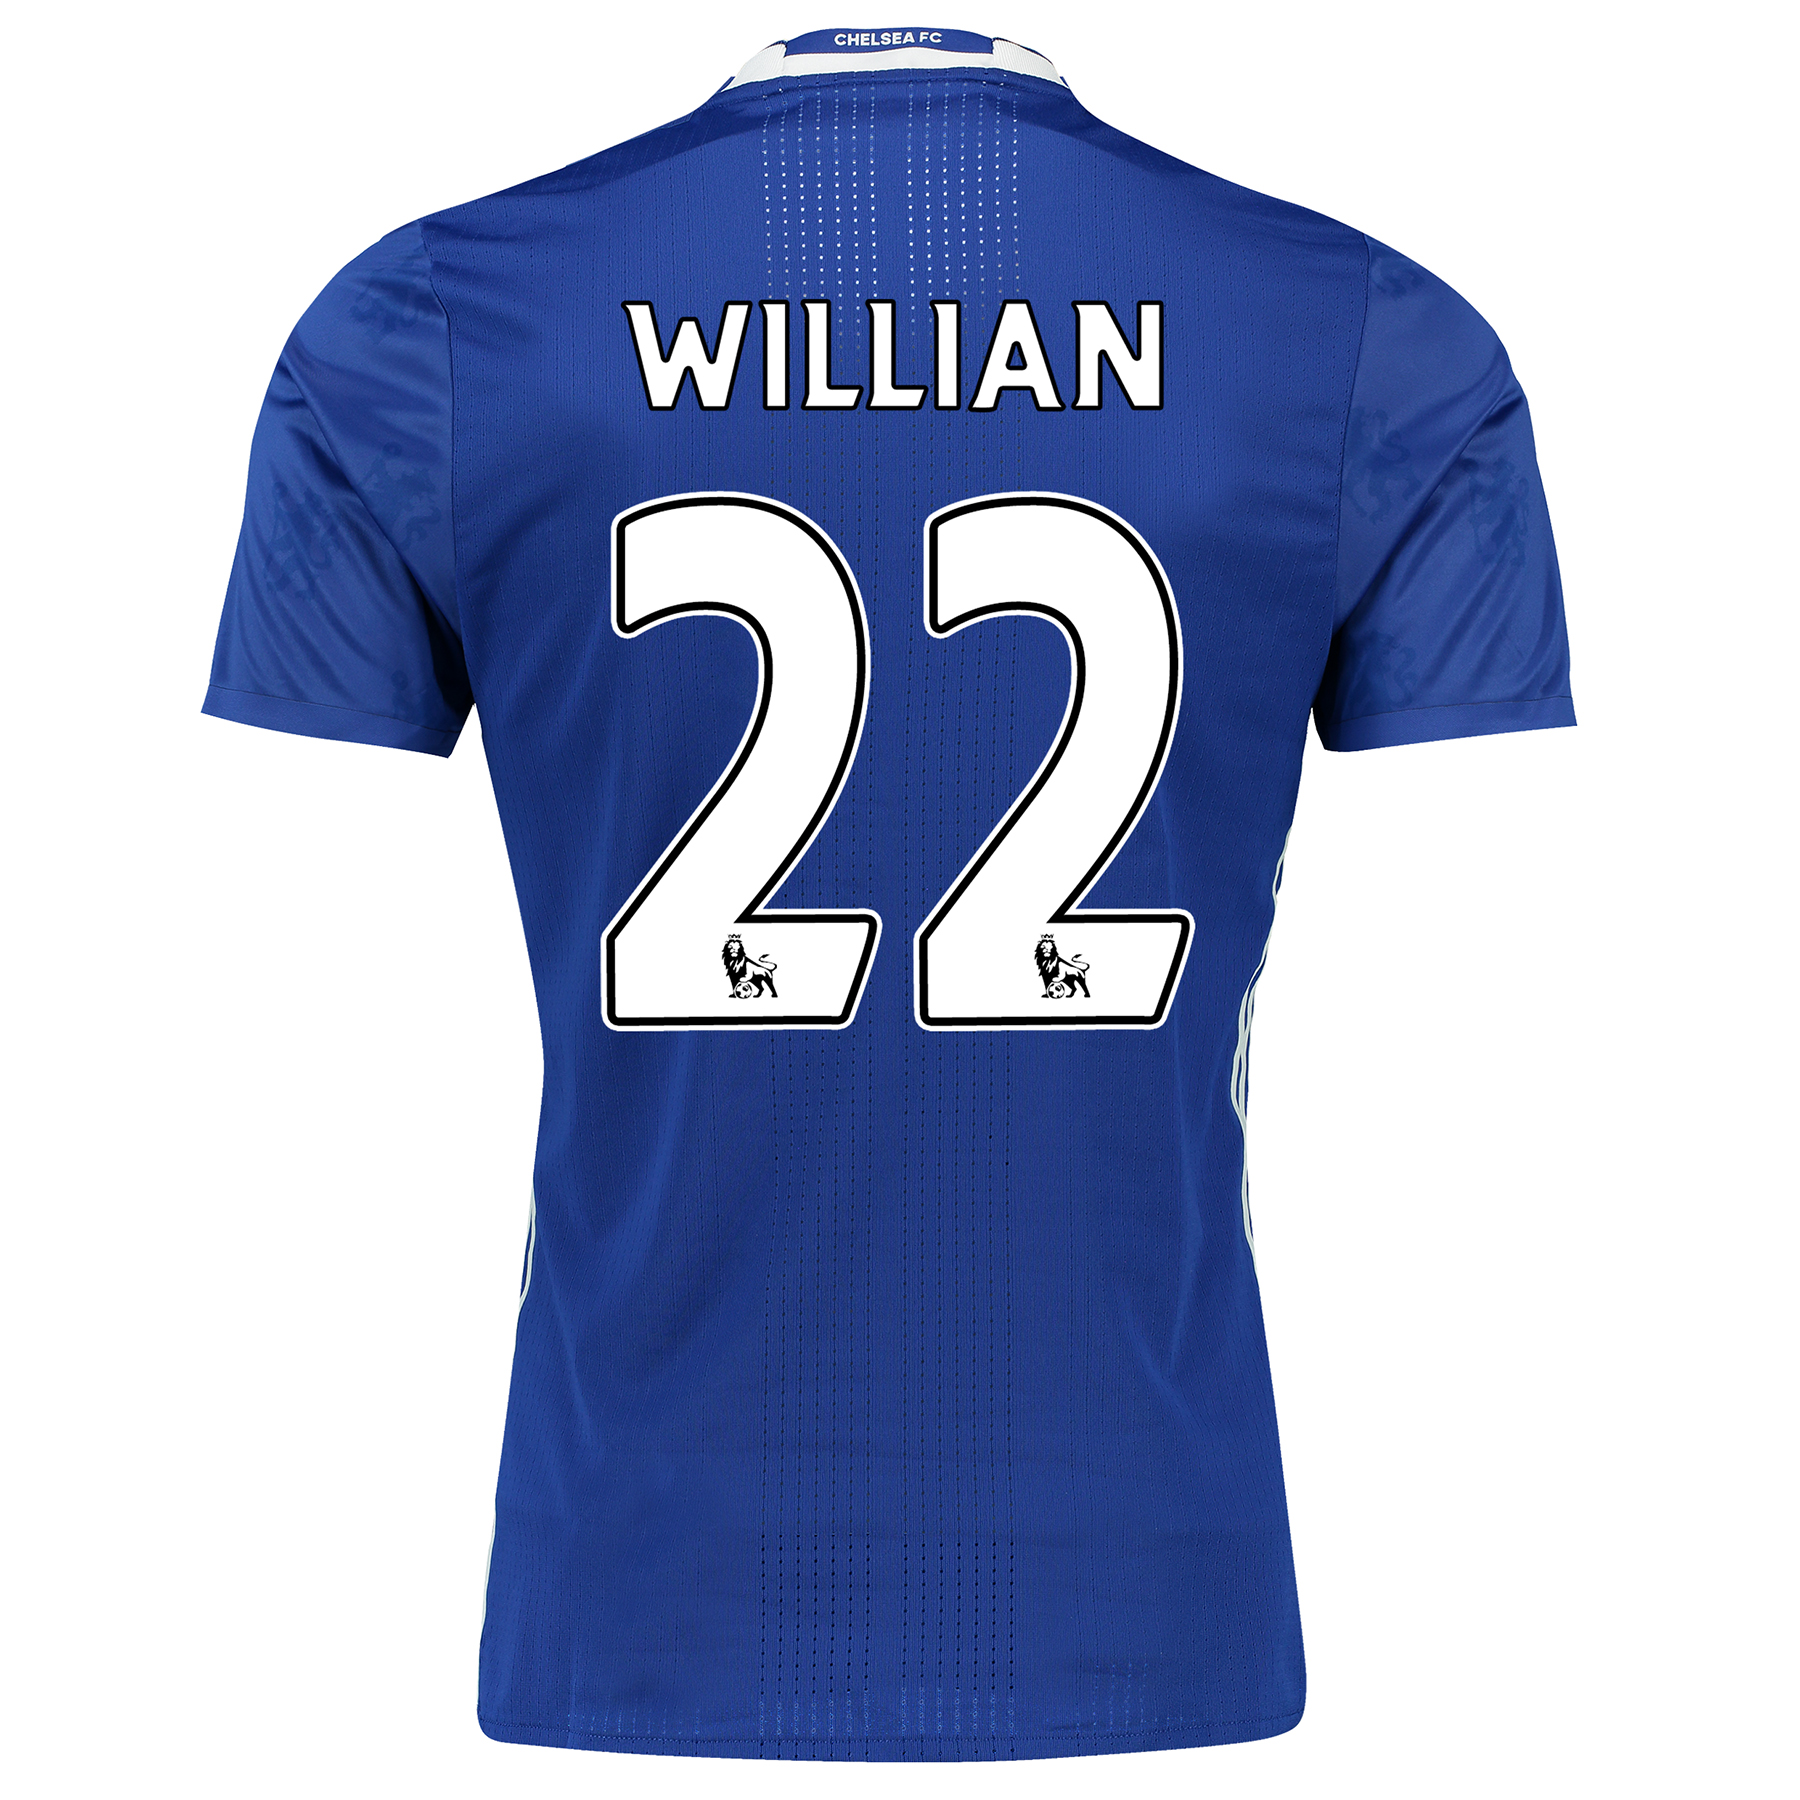 Shop Willian Printed Shirts